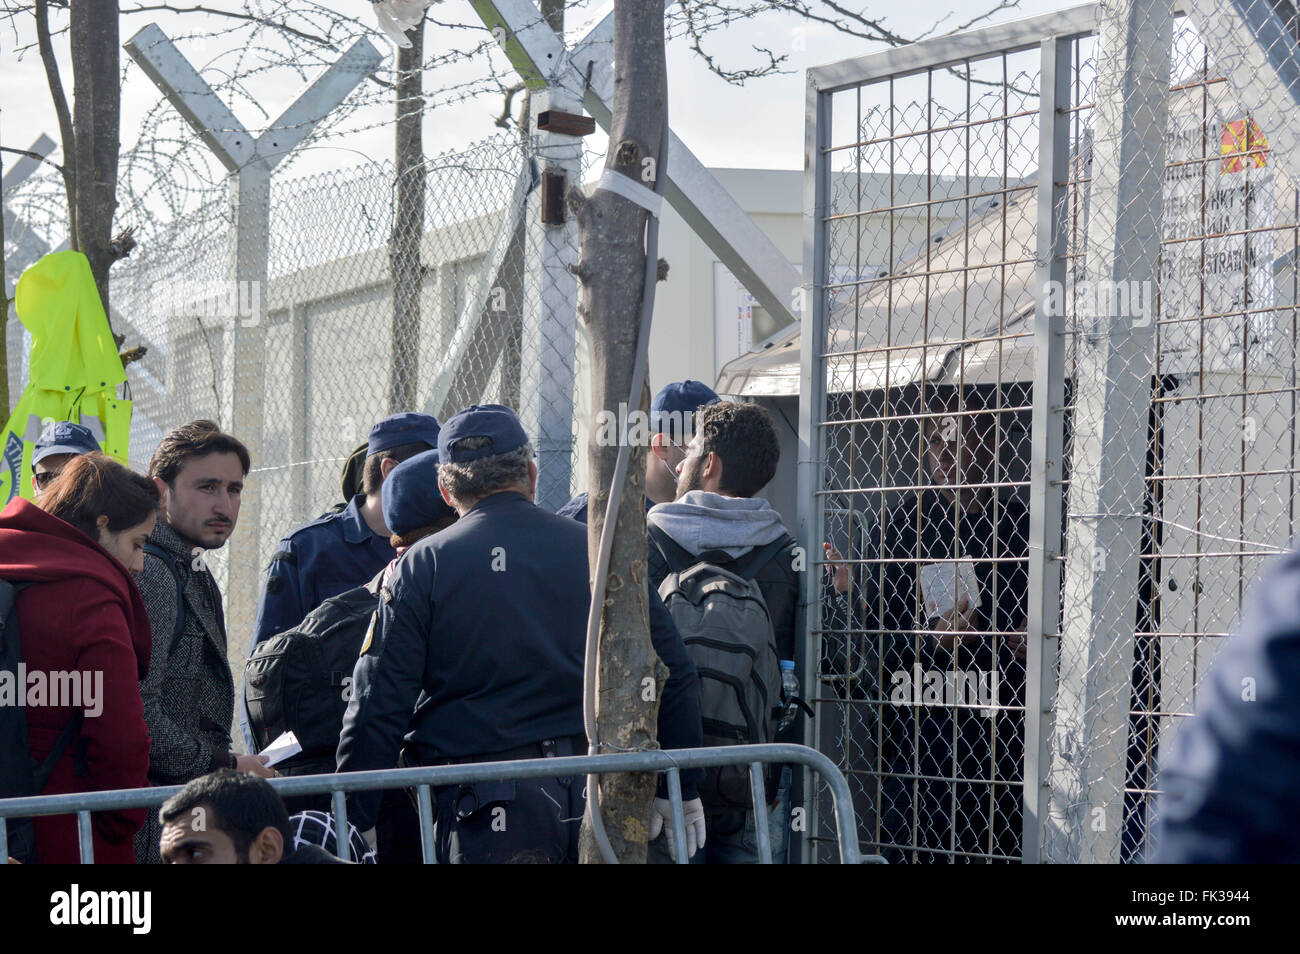 Police officers opened for a few minutes, the fence on Greece-Macedonia border and allow few refugees to cross. - Stock Image